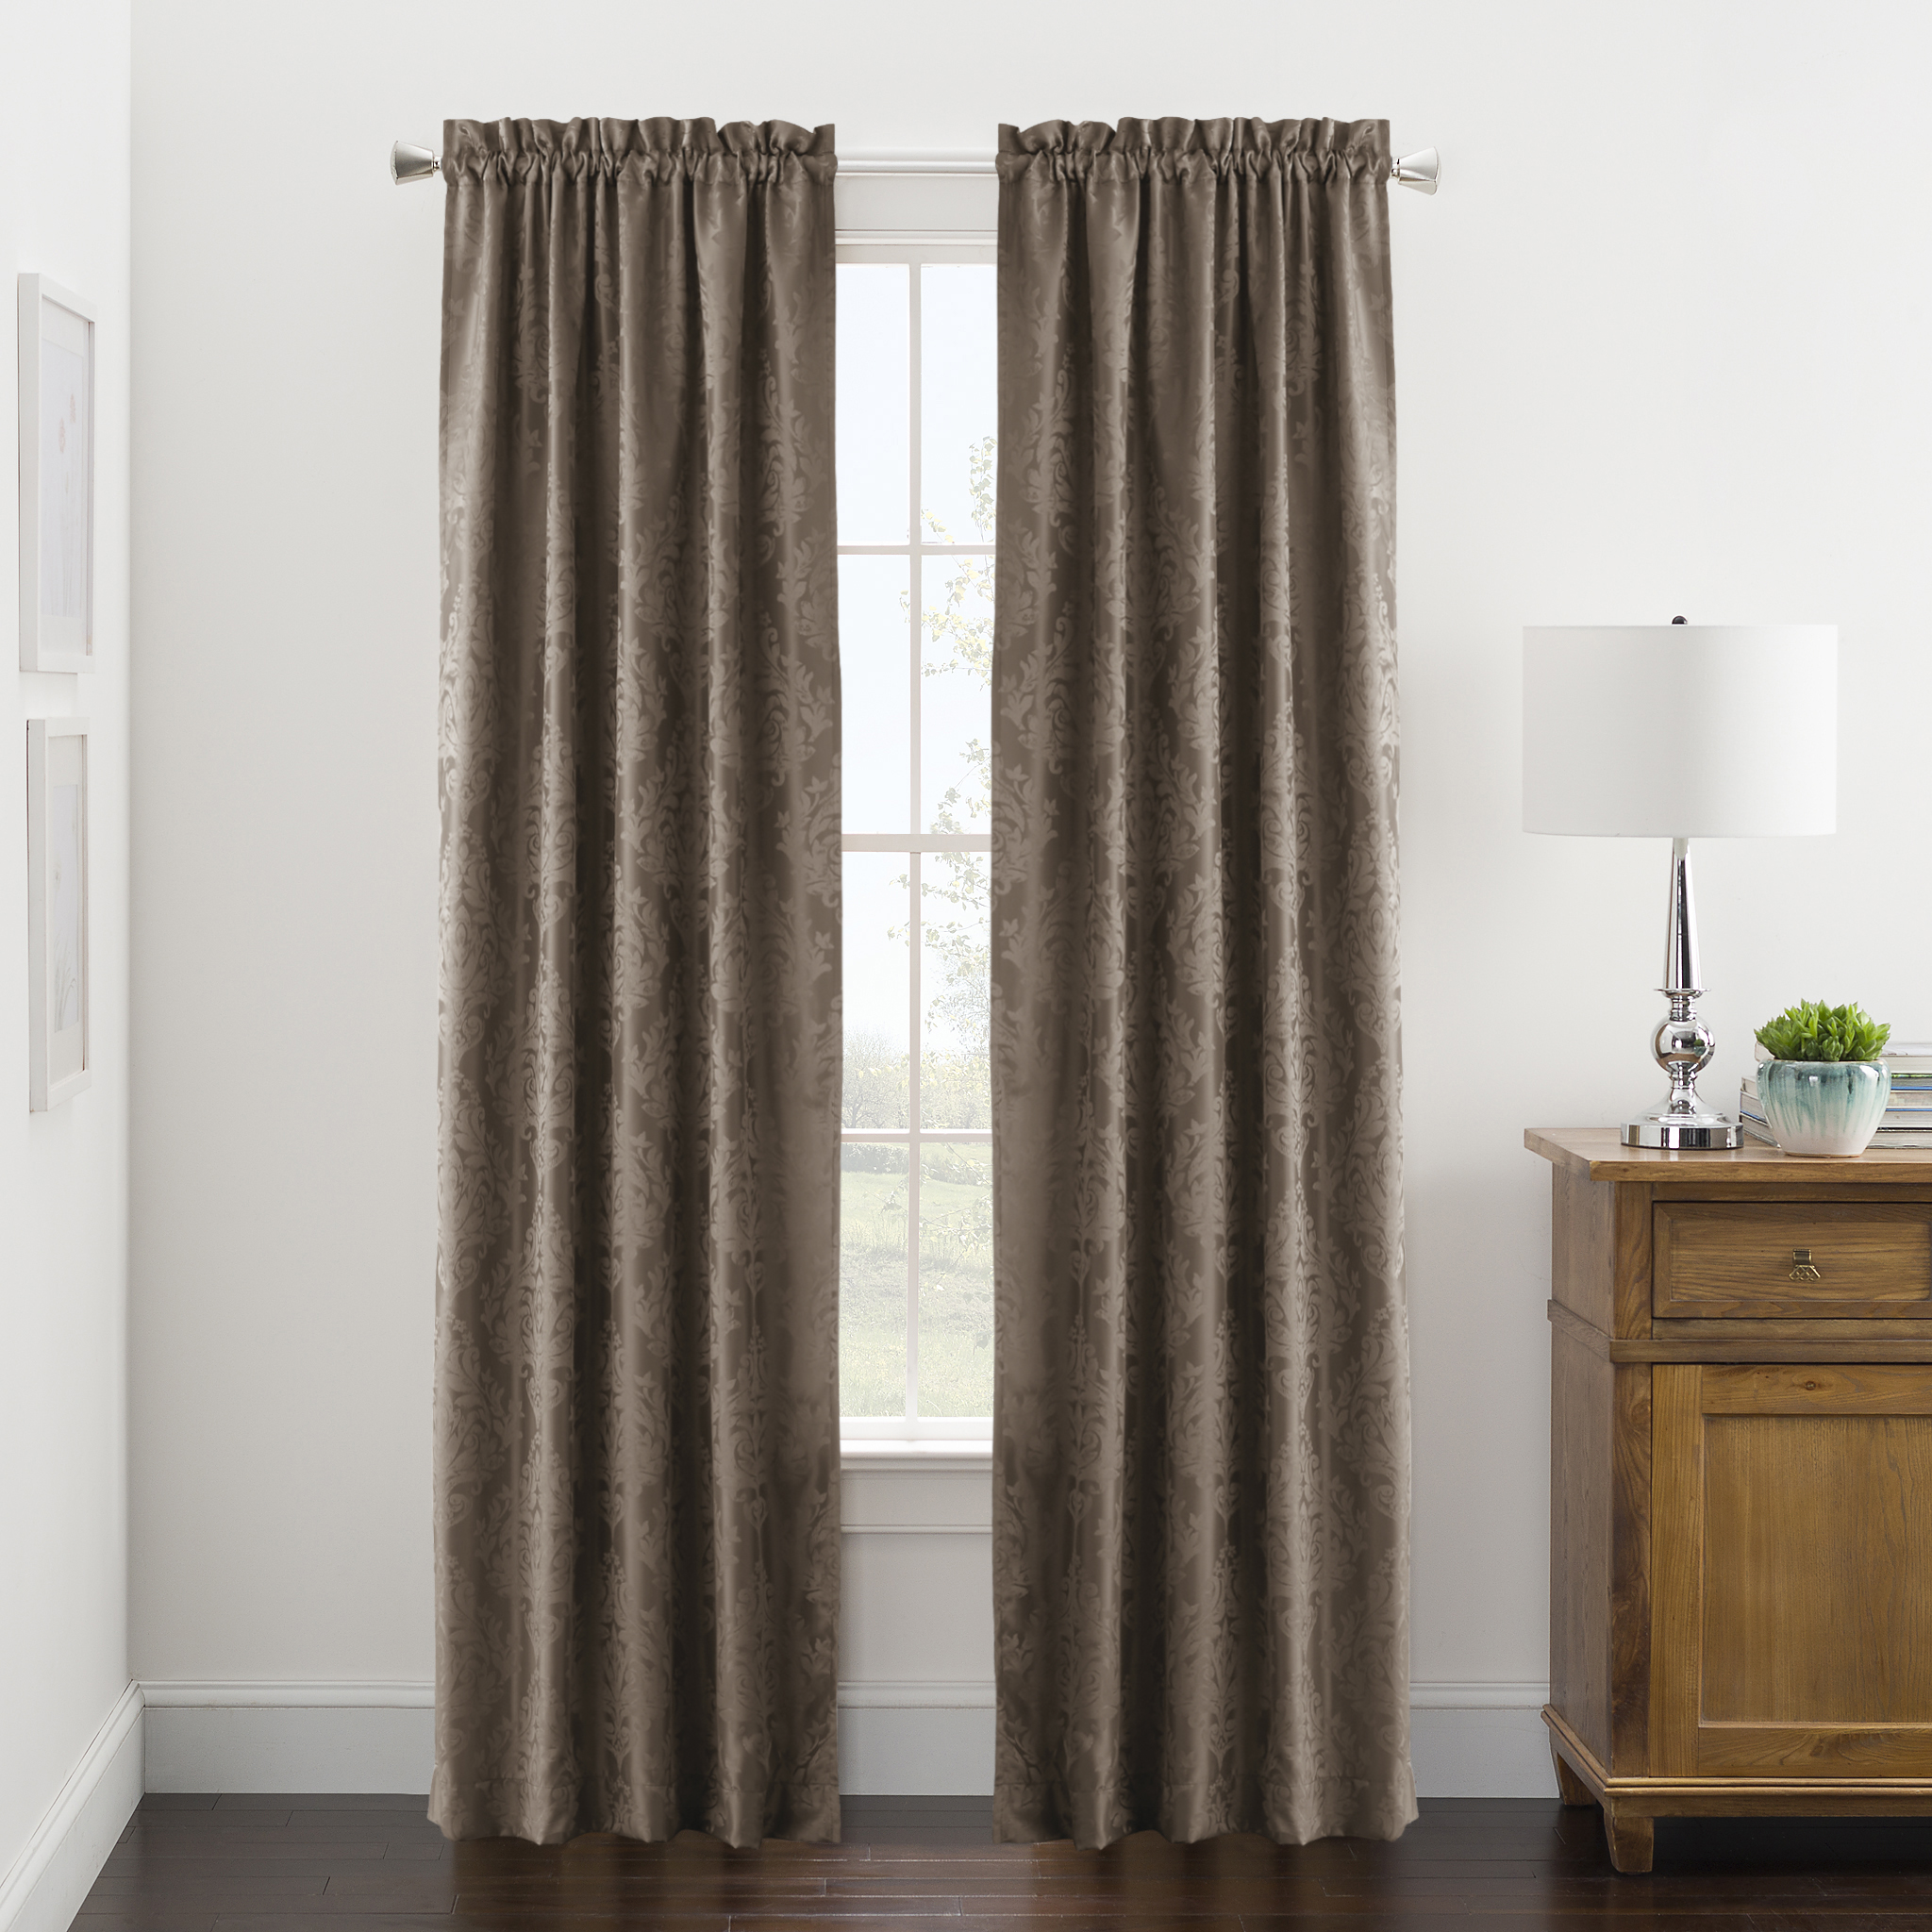 Mainstays Traditional Damask Jacquard Window Curtains, Set of 2